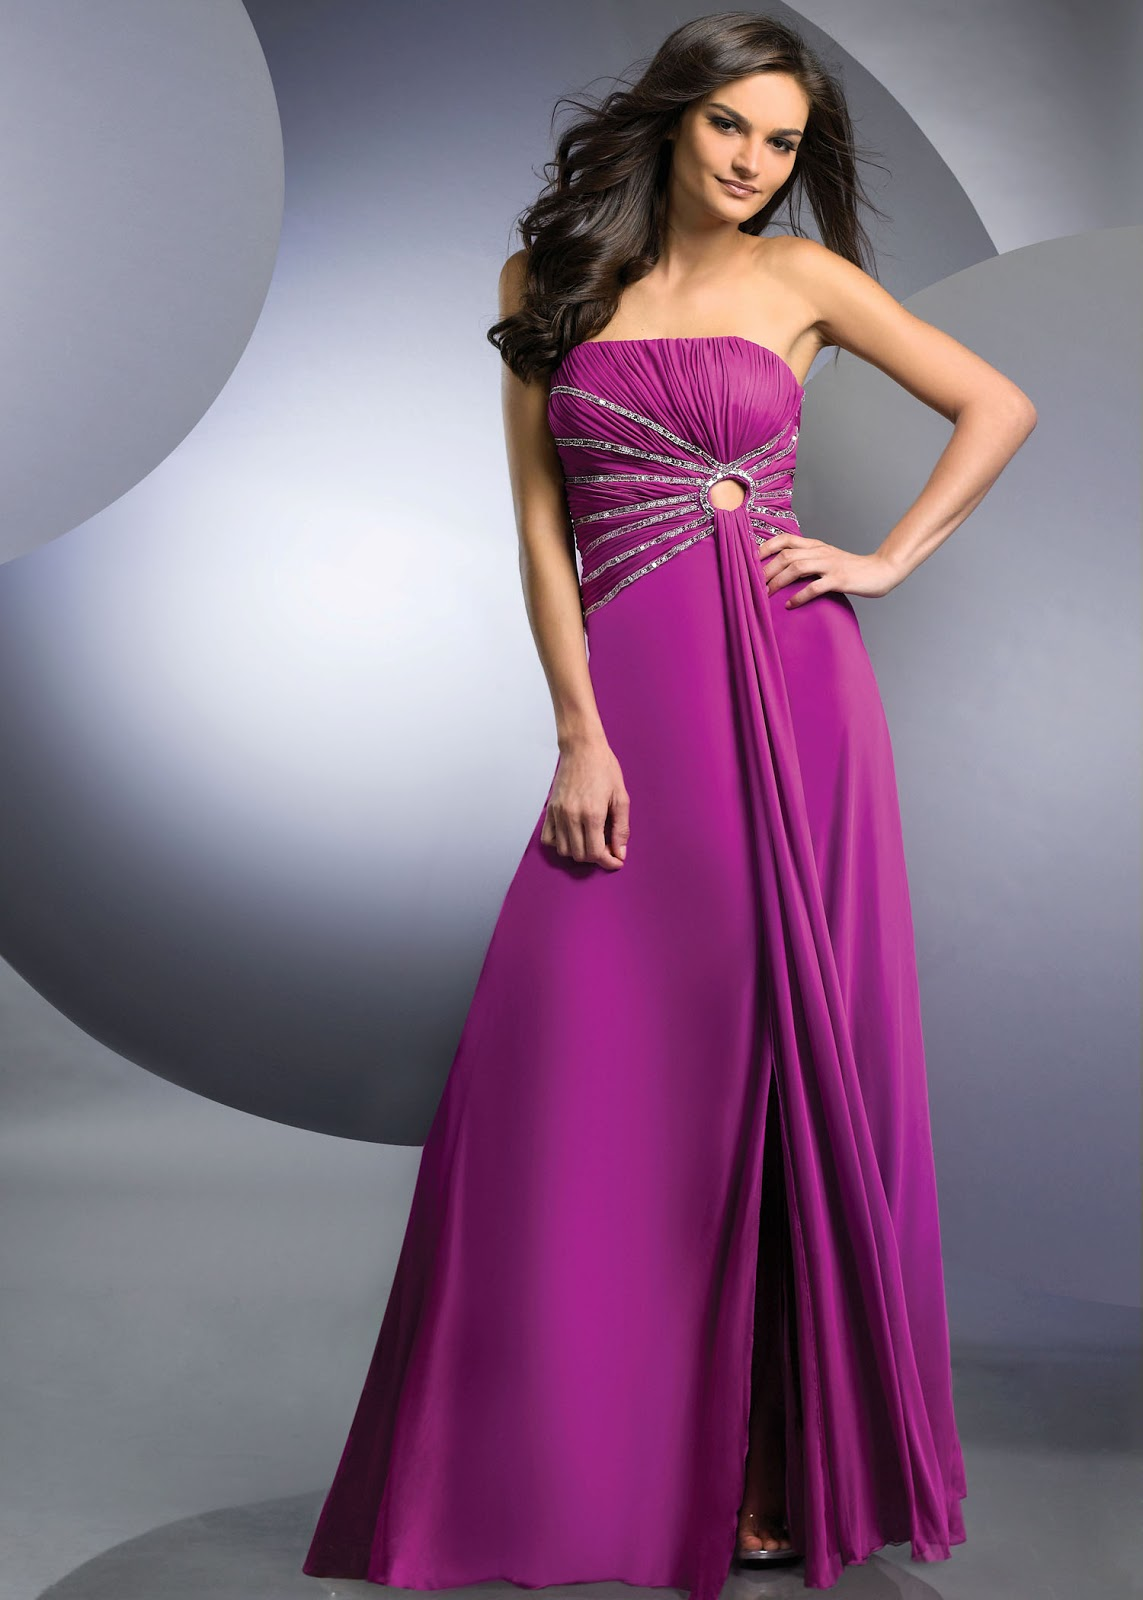 Popular Women Best Evening Dress Collection 2013